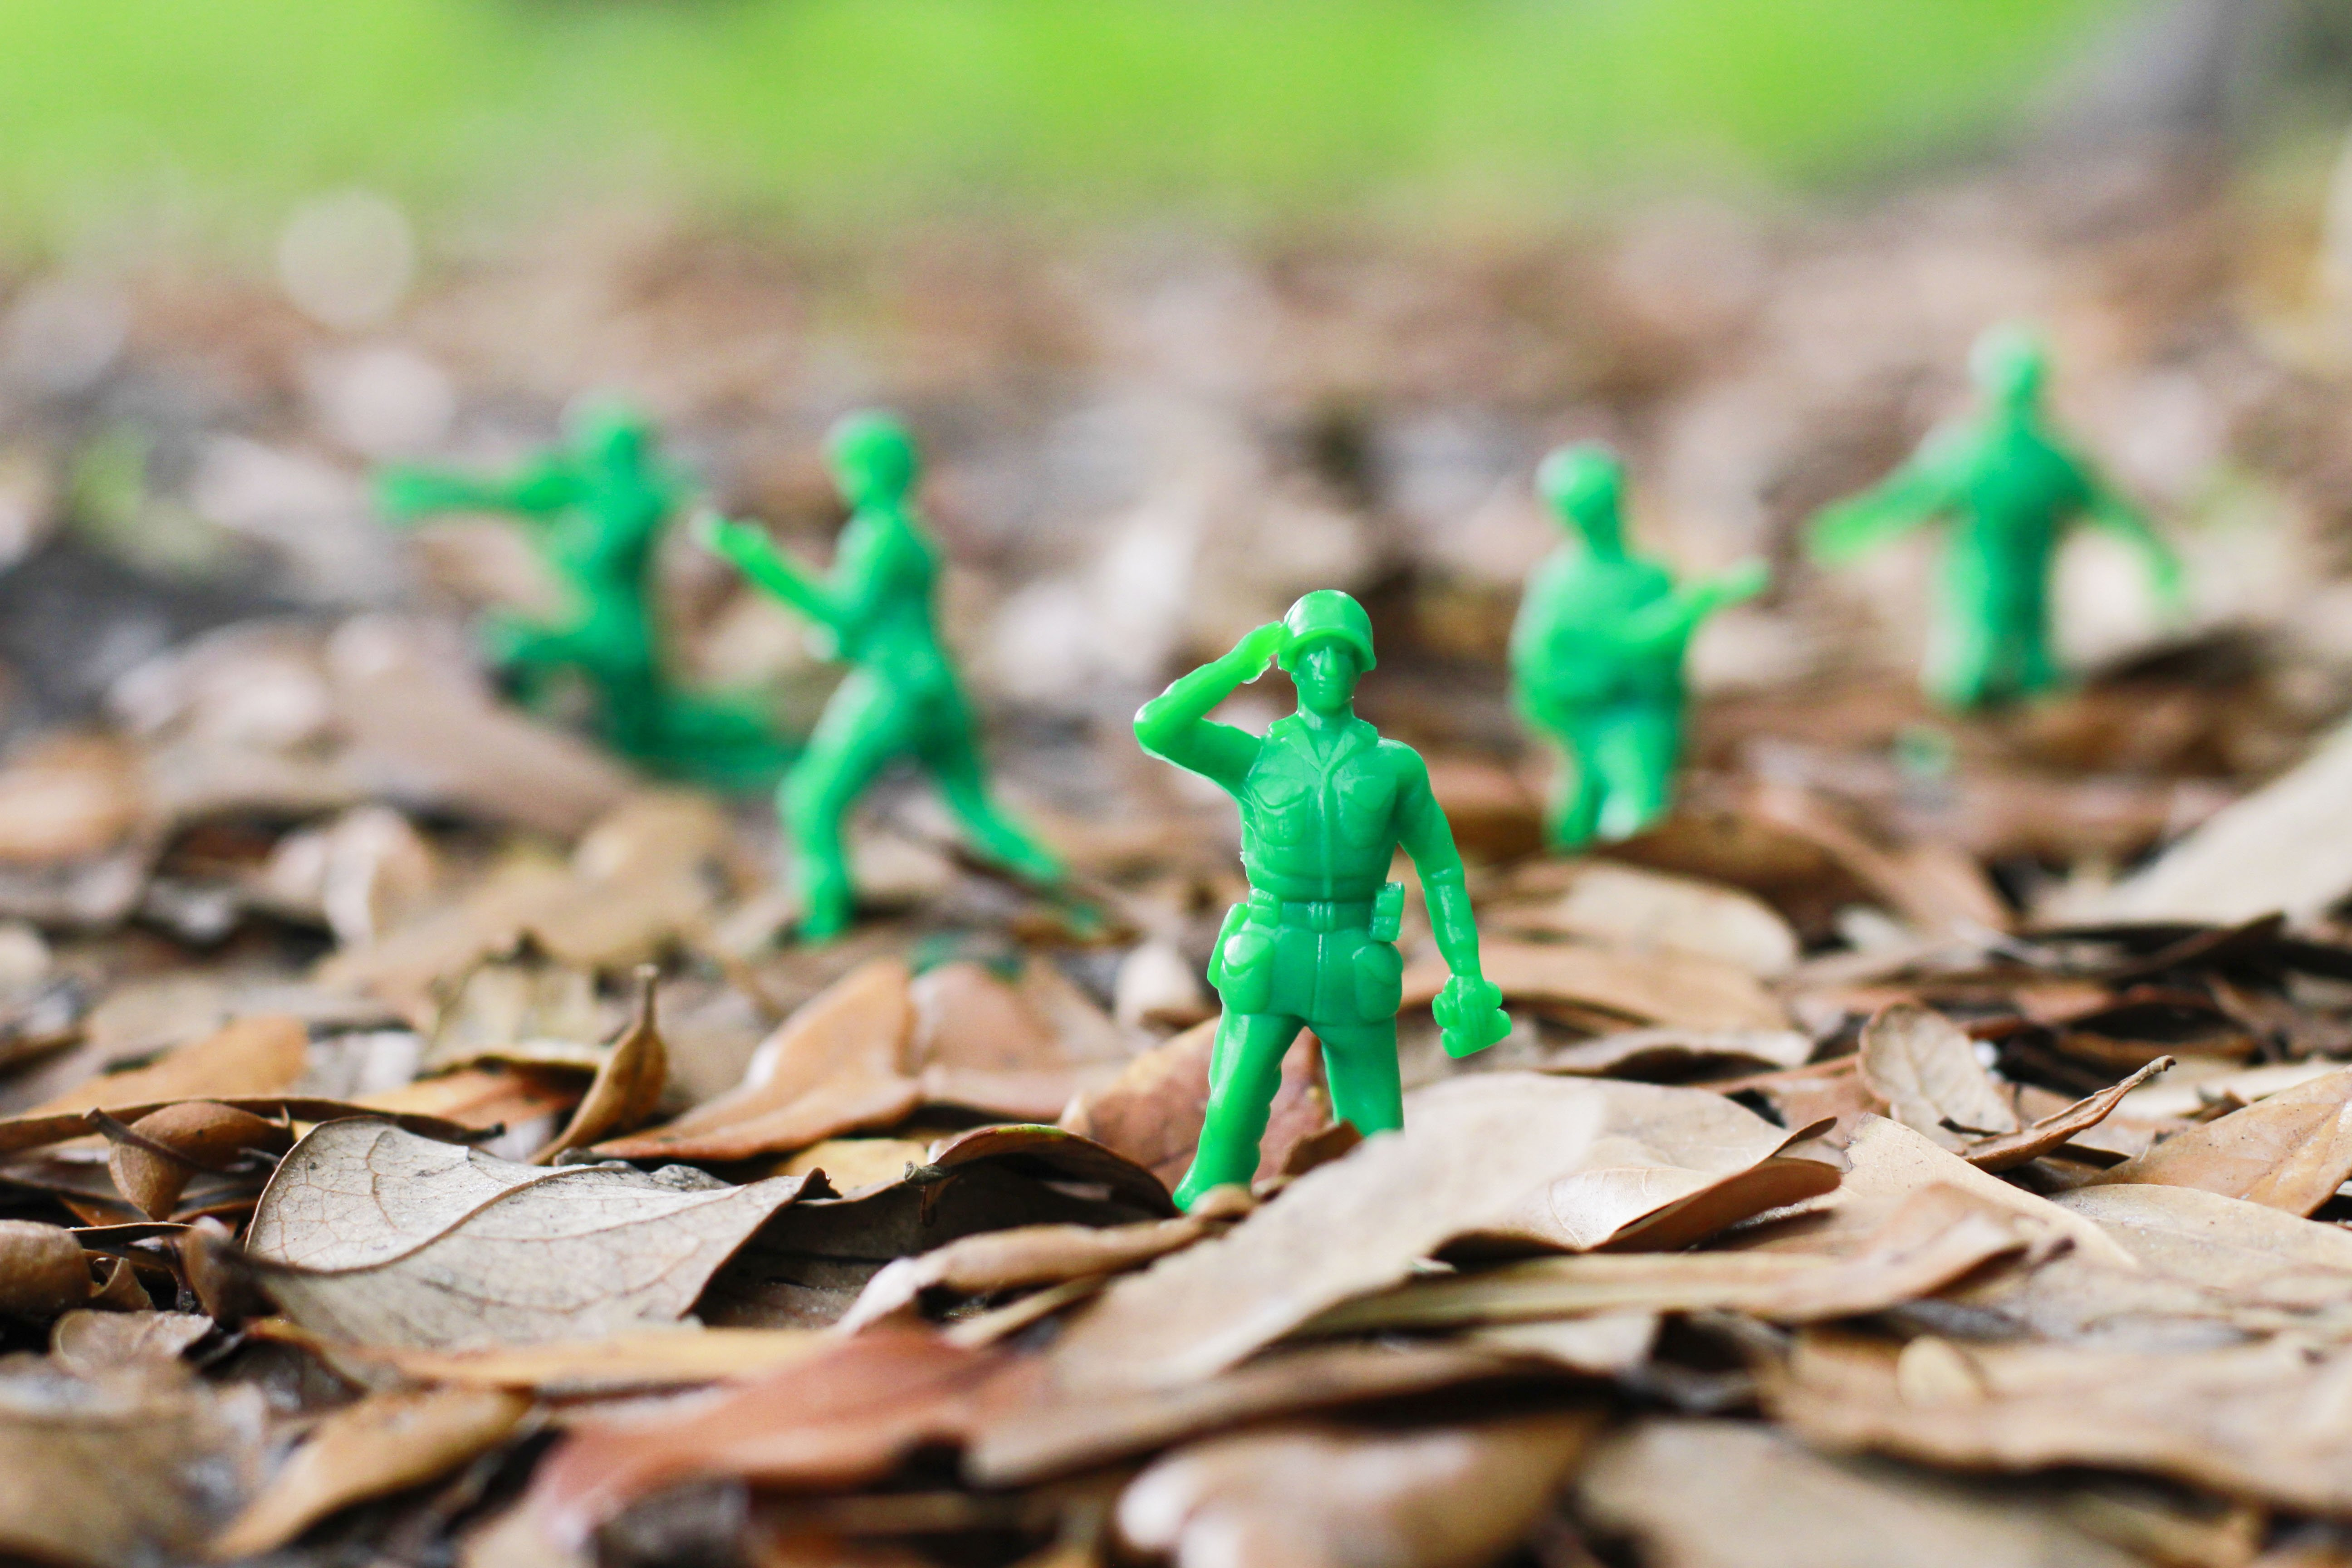 Green Army Men Toy Military Toys Soldier War Wallpaper - Toy Army Men Backgrounds , HD Wallpaper & Backgrounds